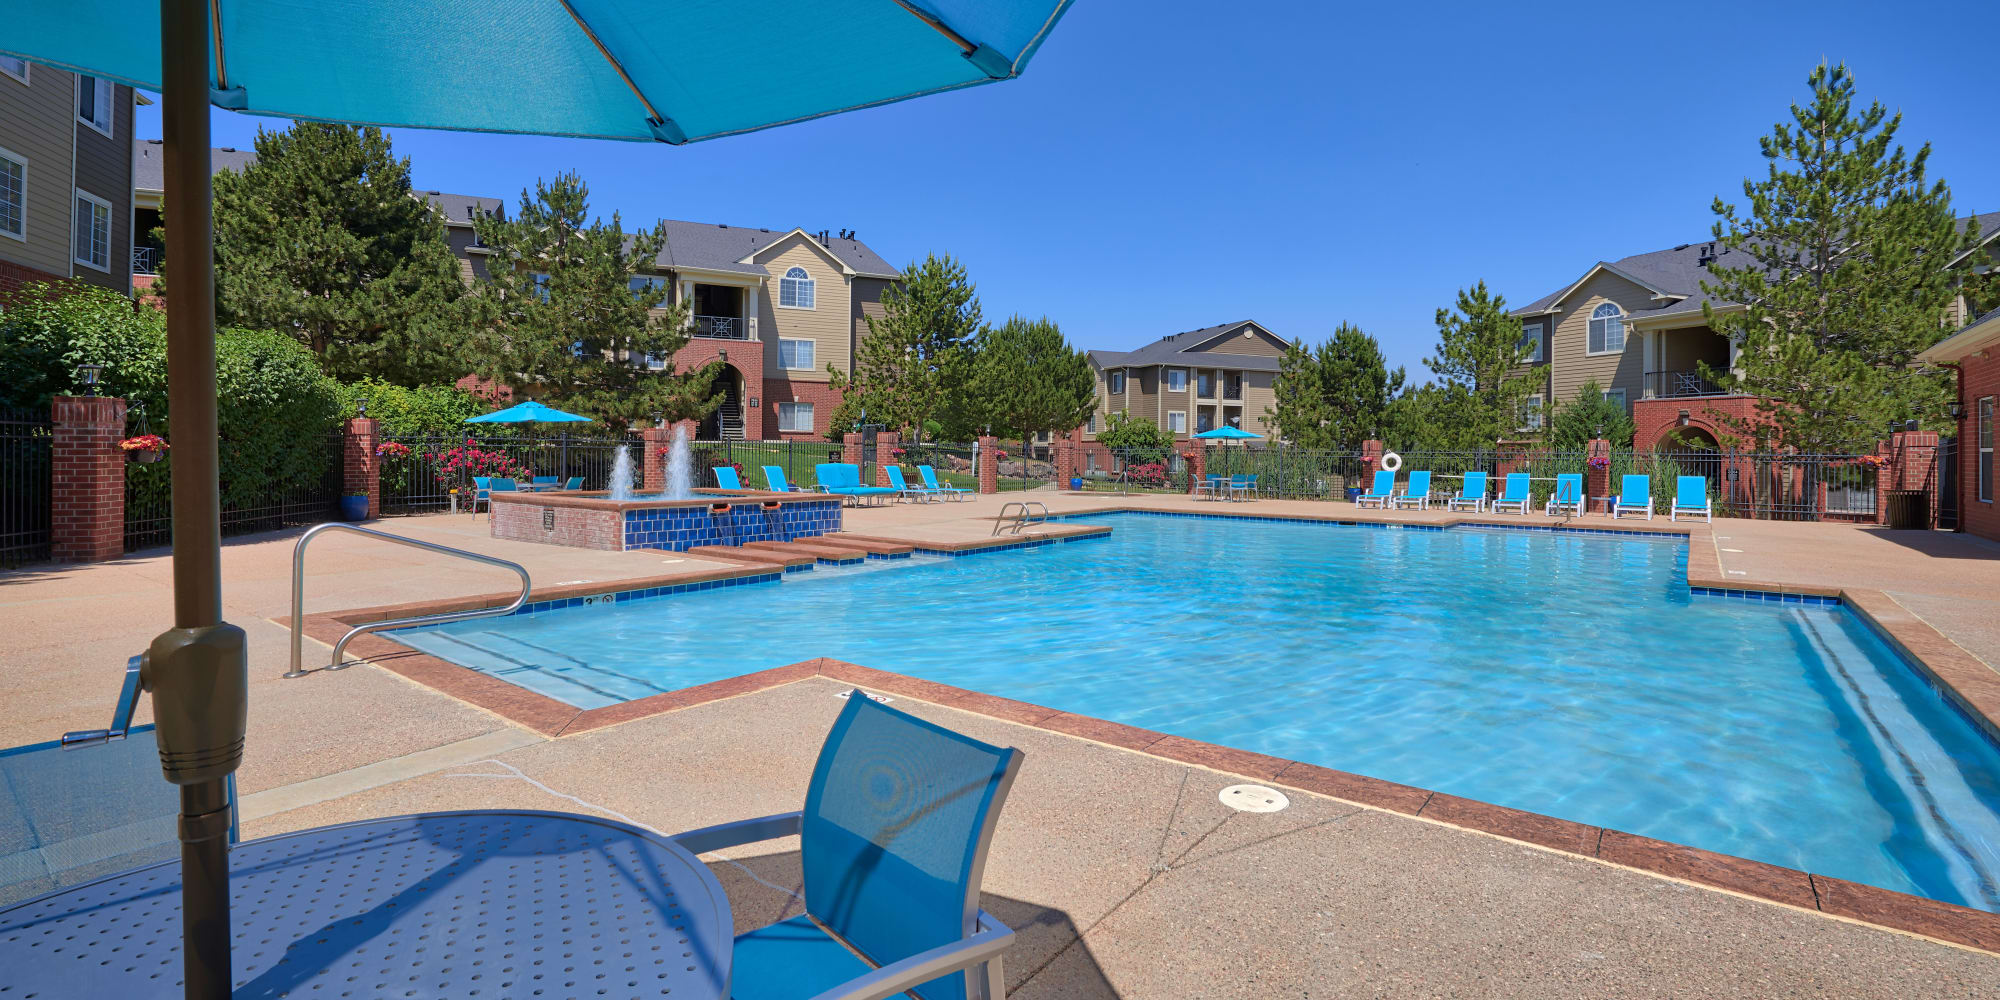 Pool view with lounges and umbrellas in Lakewood, CO